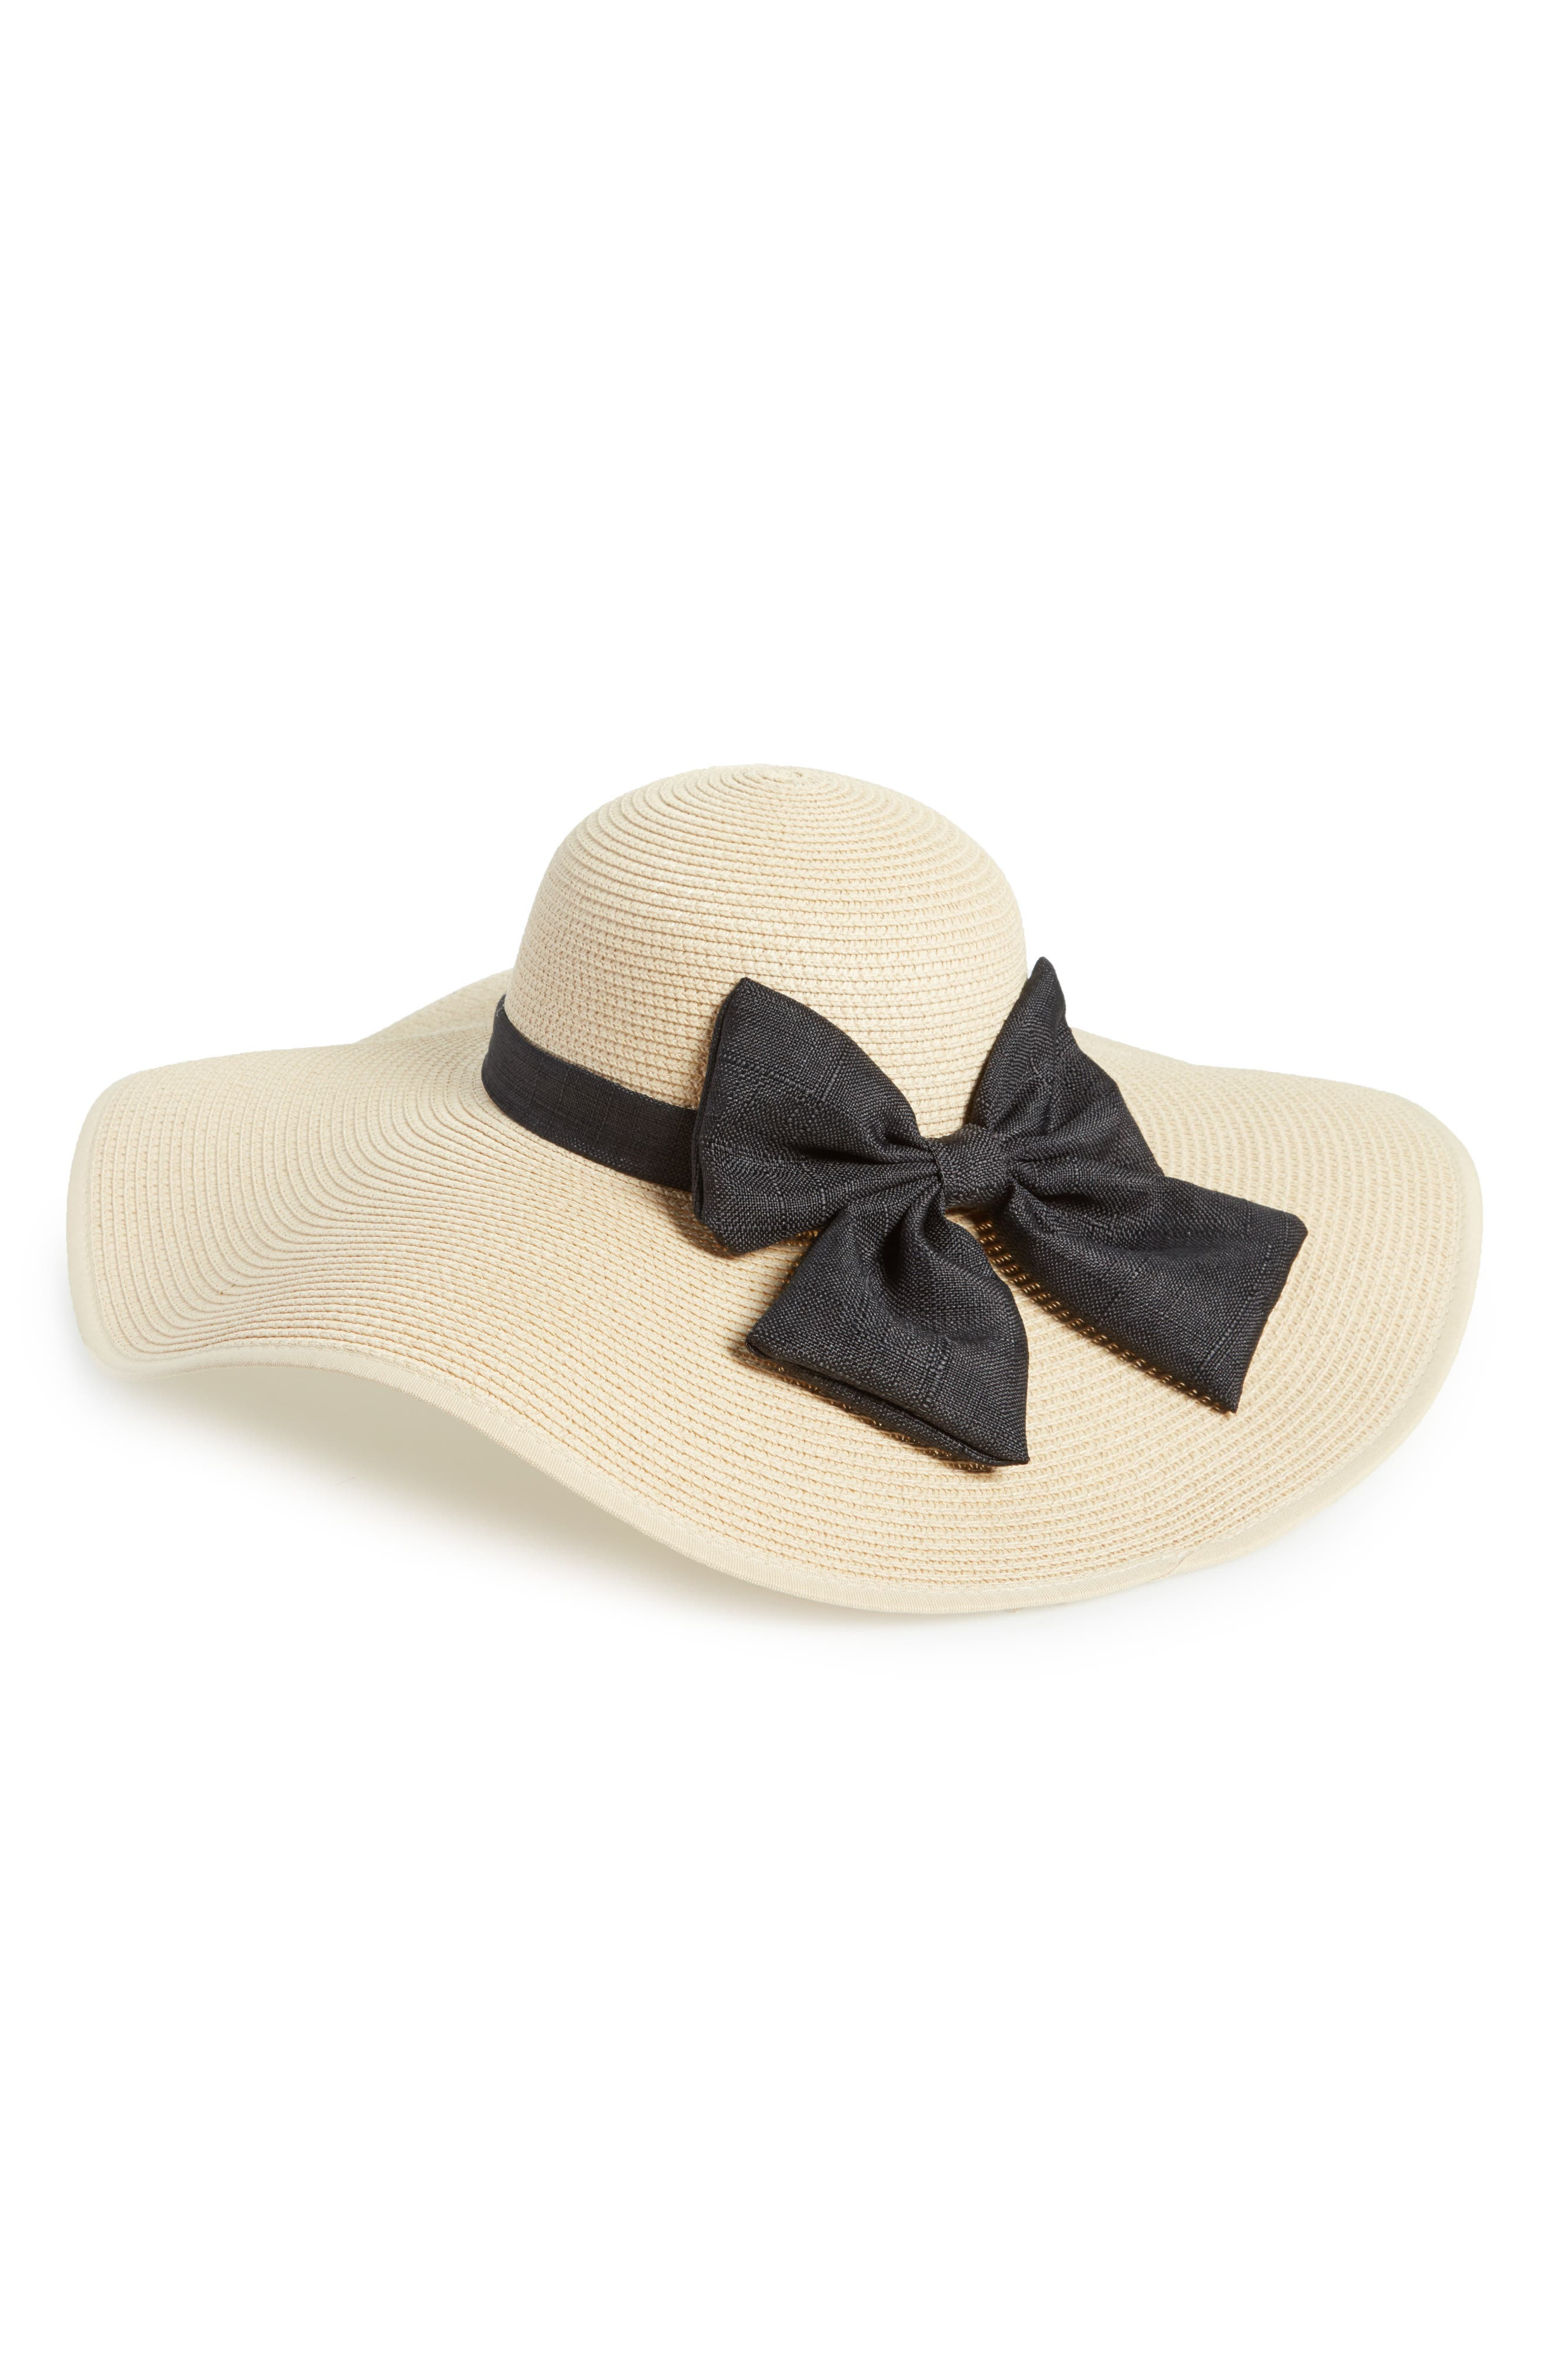 Oversize Bow Floppy Straw Hat,                             Main thumbnail 1, color,                             250